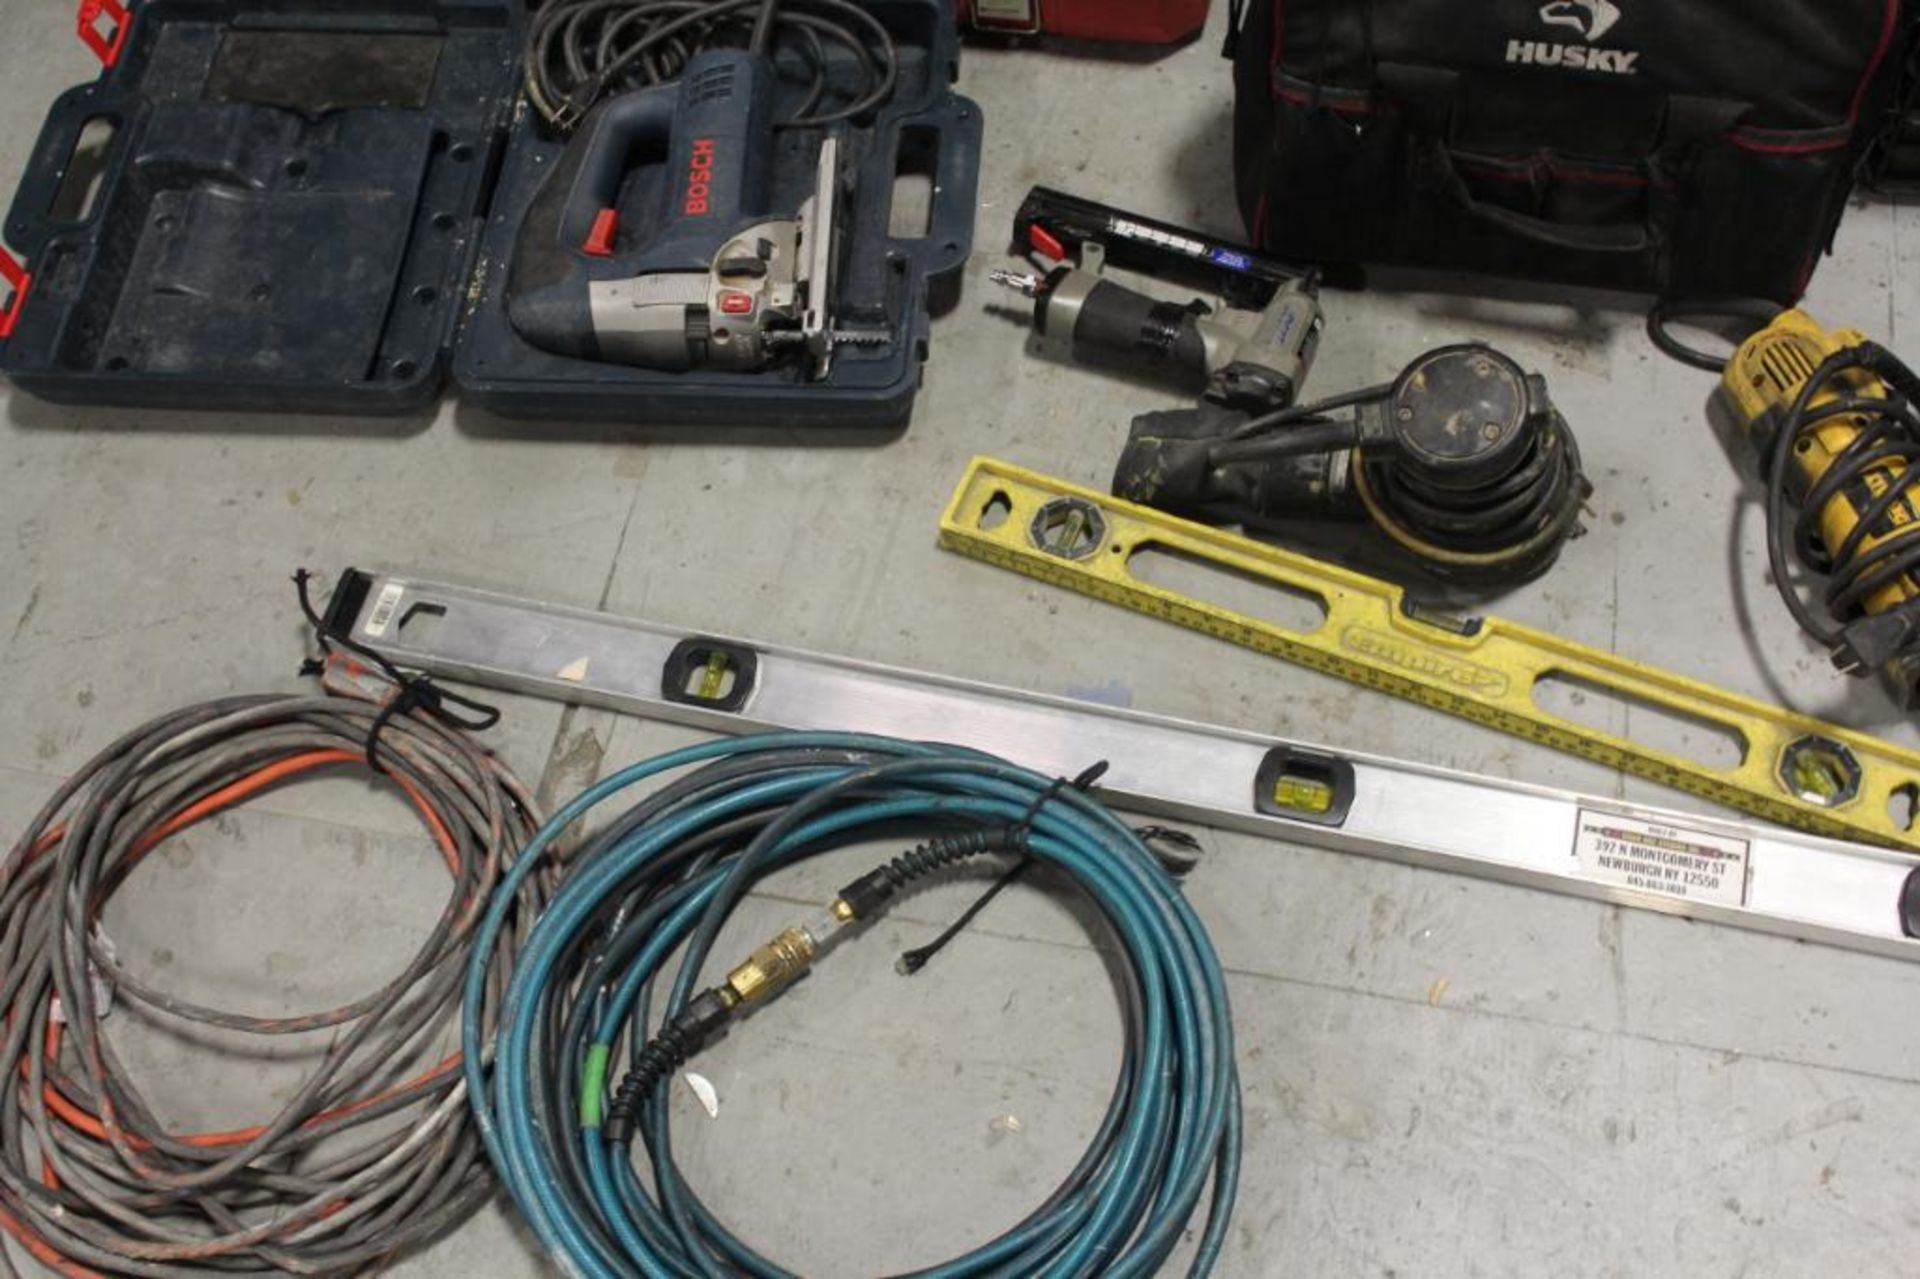 Greenlee tool box w/contents - Image 7 of 7